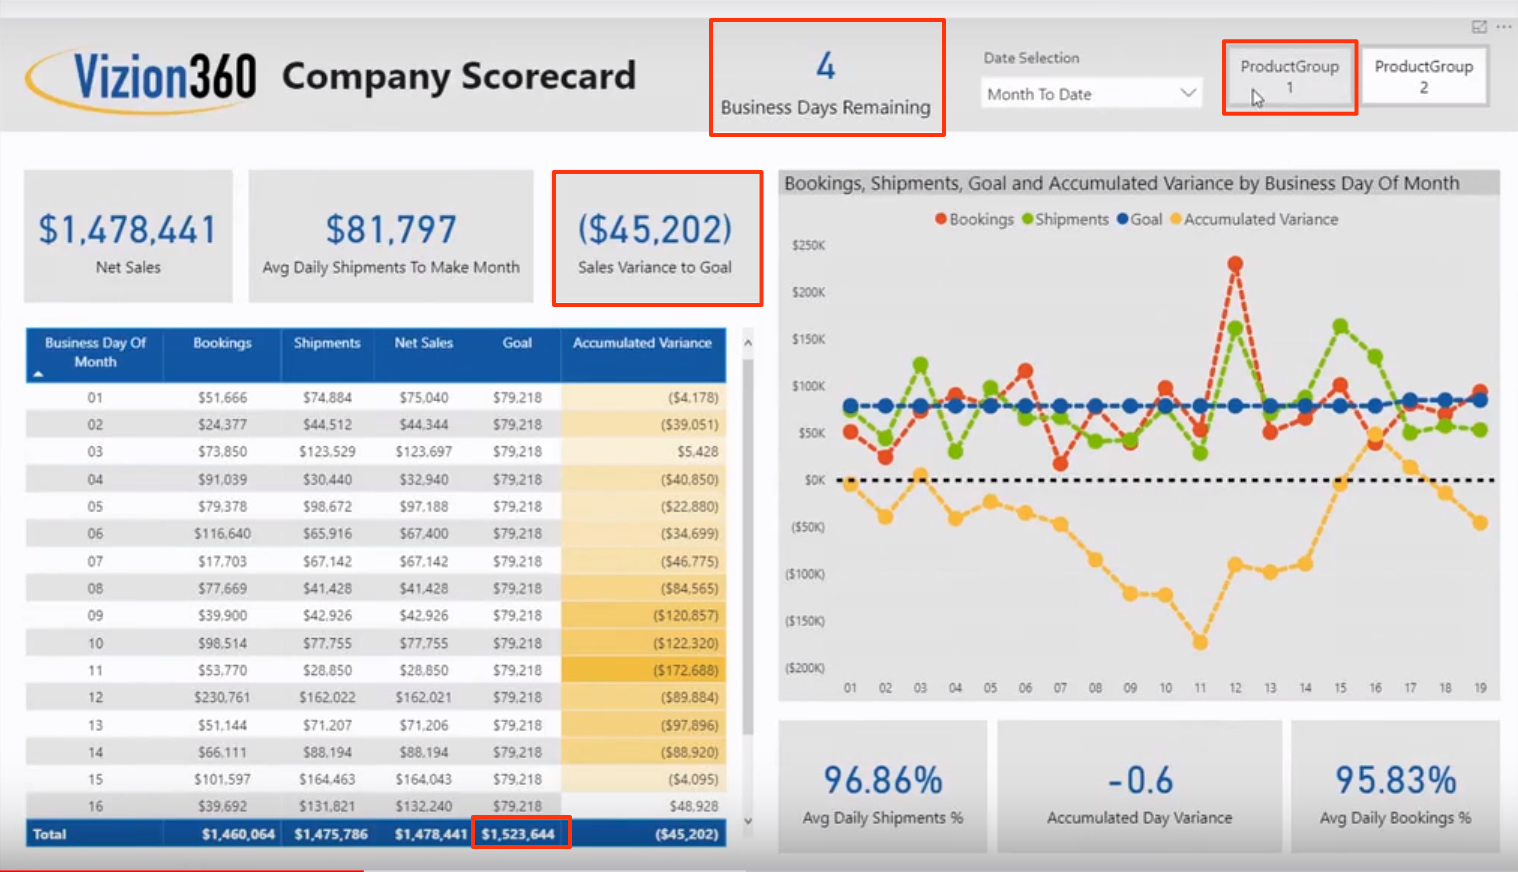 Company Scorecard is a report/dashboard made for the CEO shows important data to make quick decisions. Data like: How many business days left in the month? What product group is slowing down sales? Am I behind on my sales goals? Business Intelligence delivers insight into data.